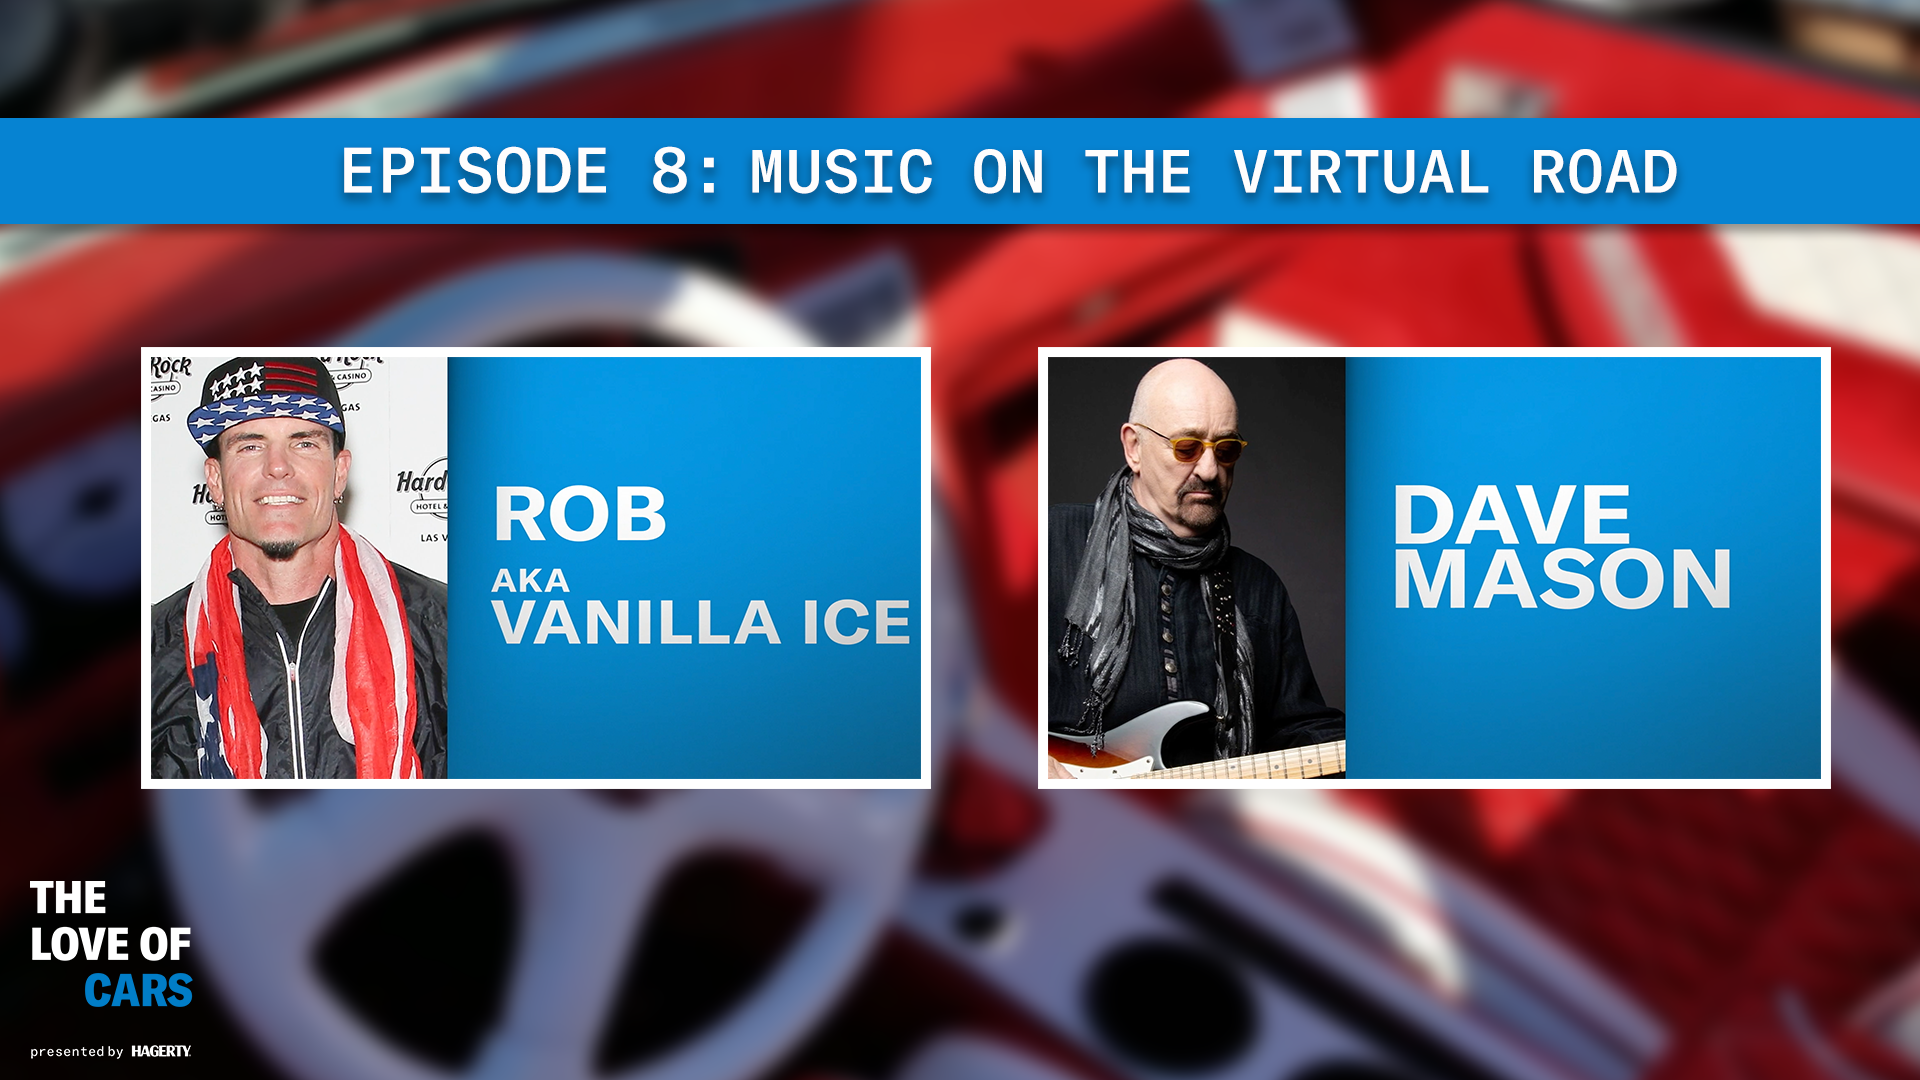 The Love of Cars Thumbnail Rob Van Winkle and Dave Mason